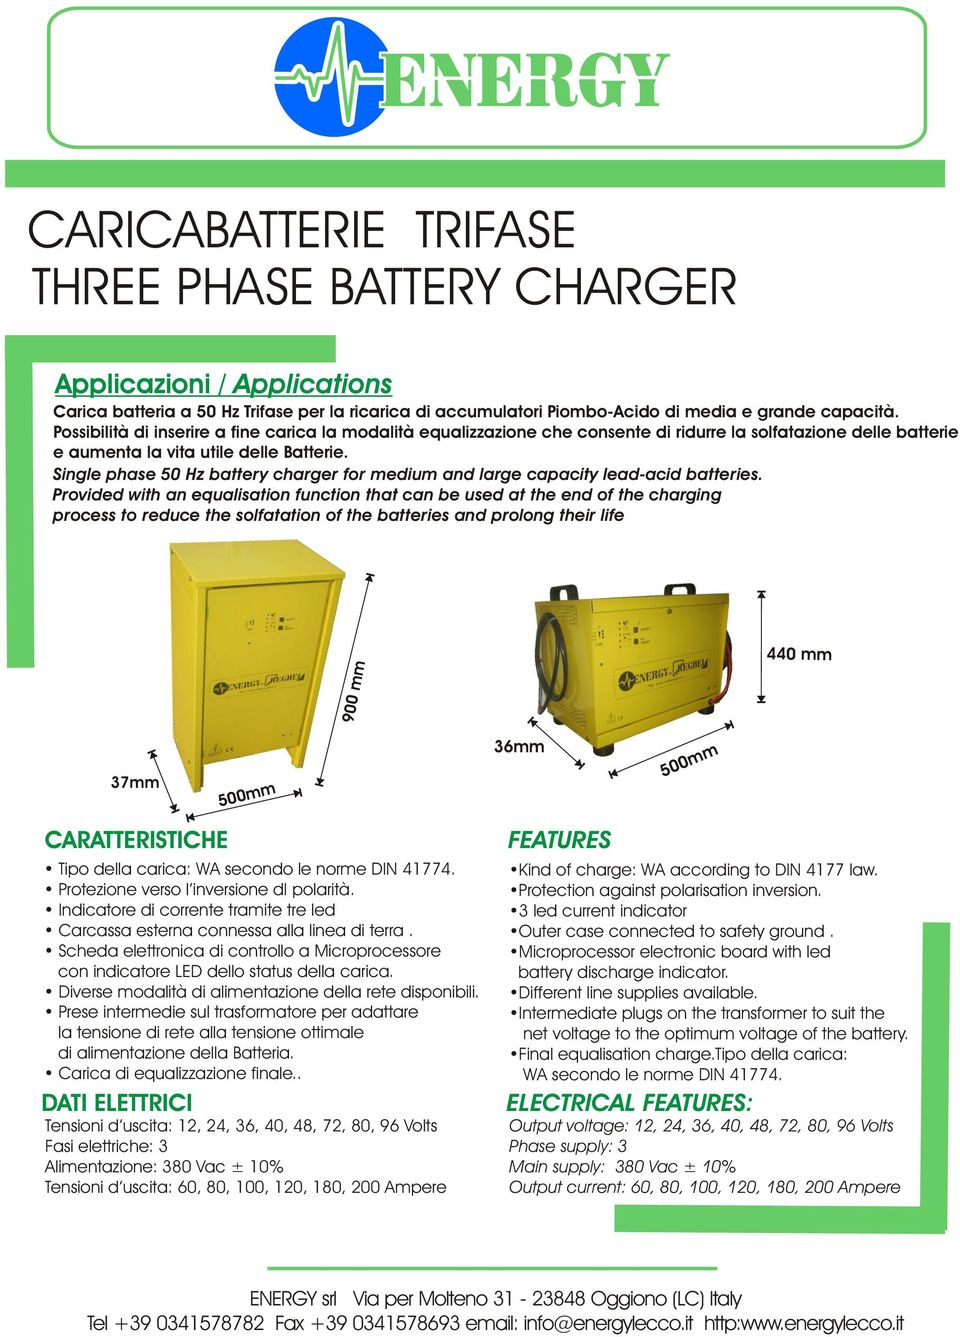 Single phase 50 Hz battery charger for medium and large capacity lead-acid batteries.